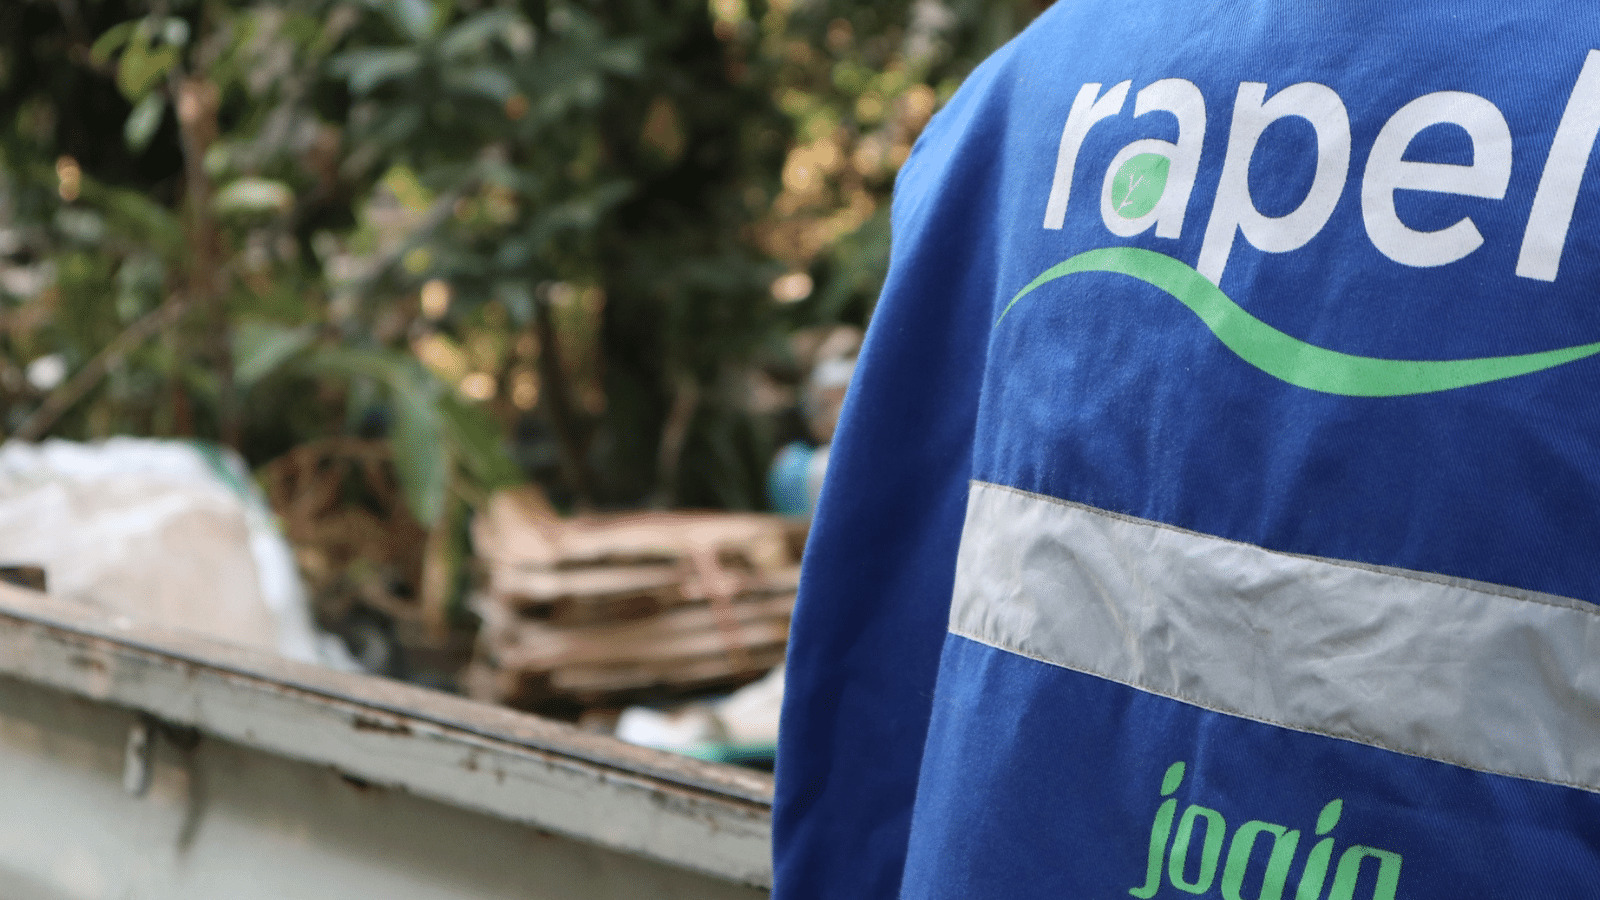 Read more about the article Rapel.id : Digital Recycling Service Turning Trash Into Cash